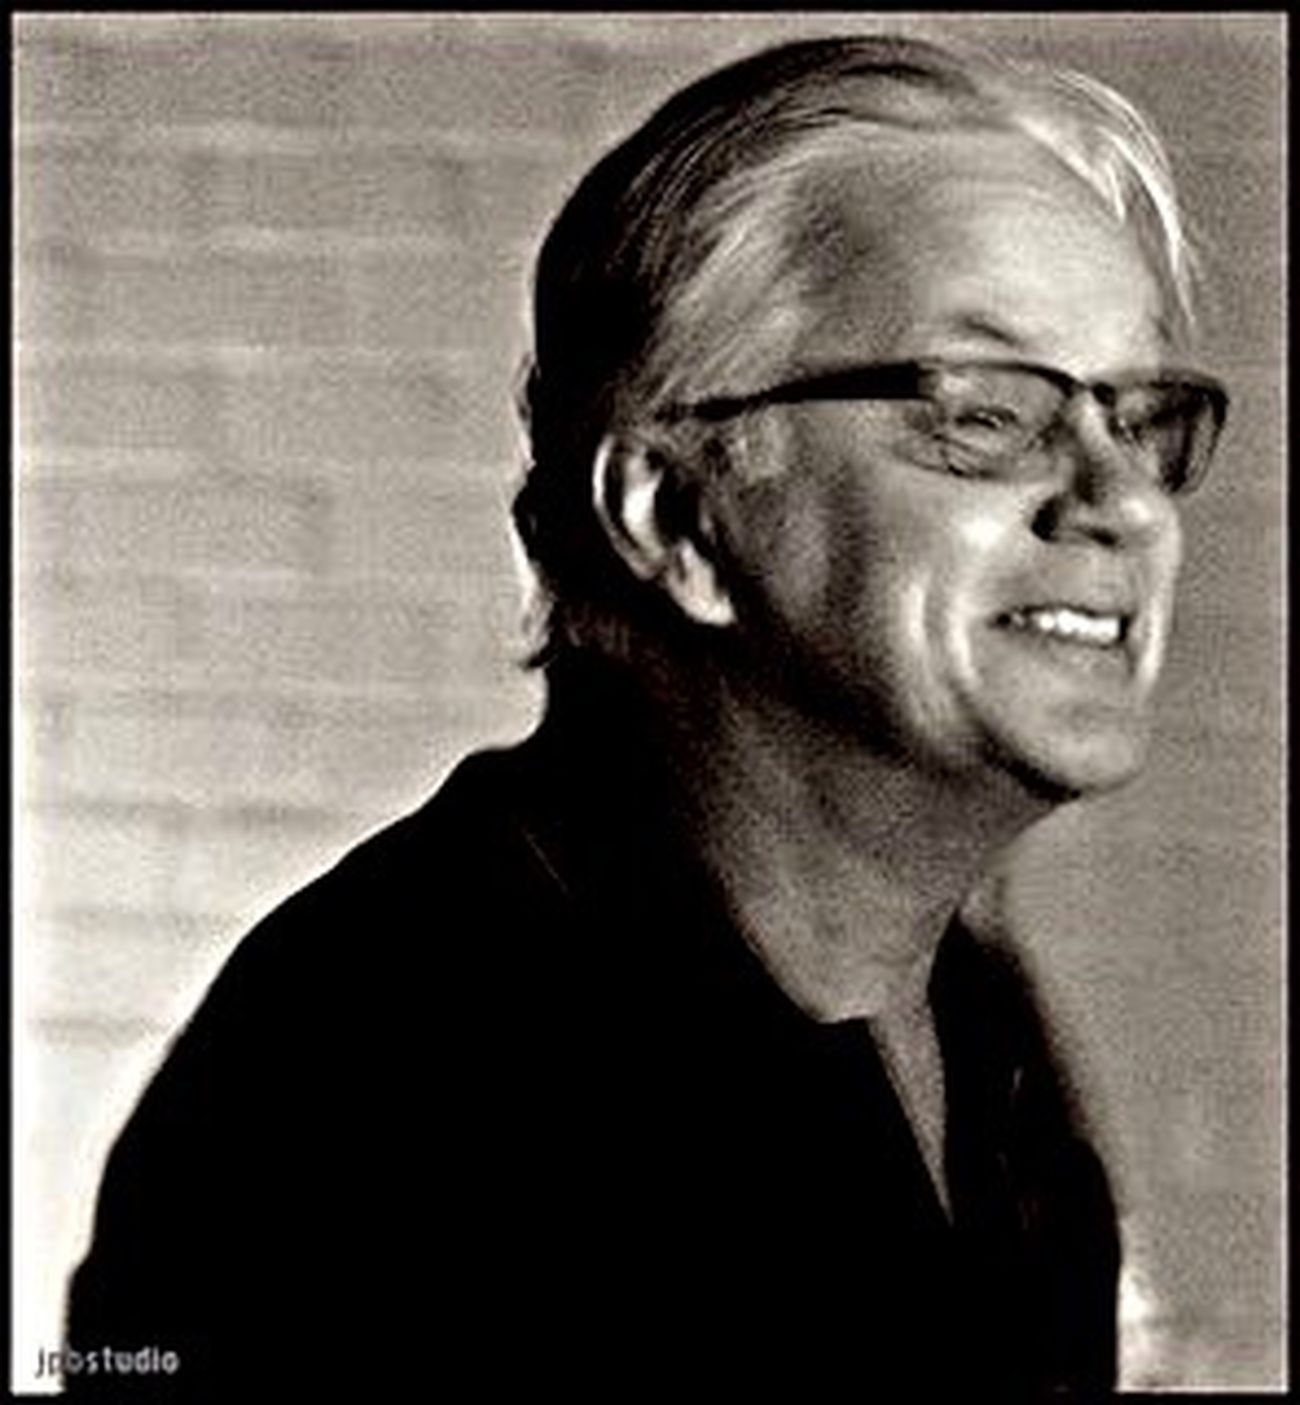 Actor/director/activist Tim Robbins/Chino Ca Correctional Facility/Actors Gang Prison Project Grainyiscool Actor Film Star Black And White Activist  Director Canon G9 Celebrity Portraiture